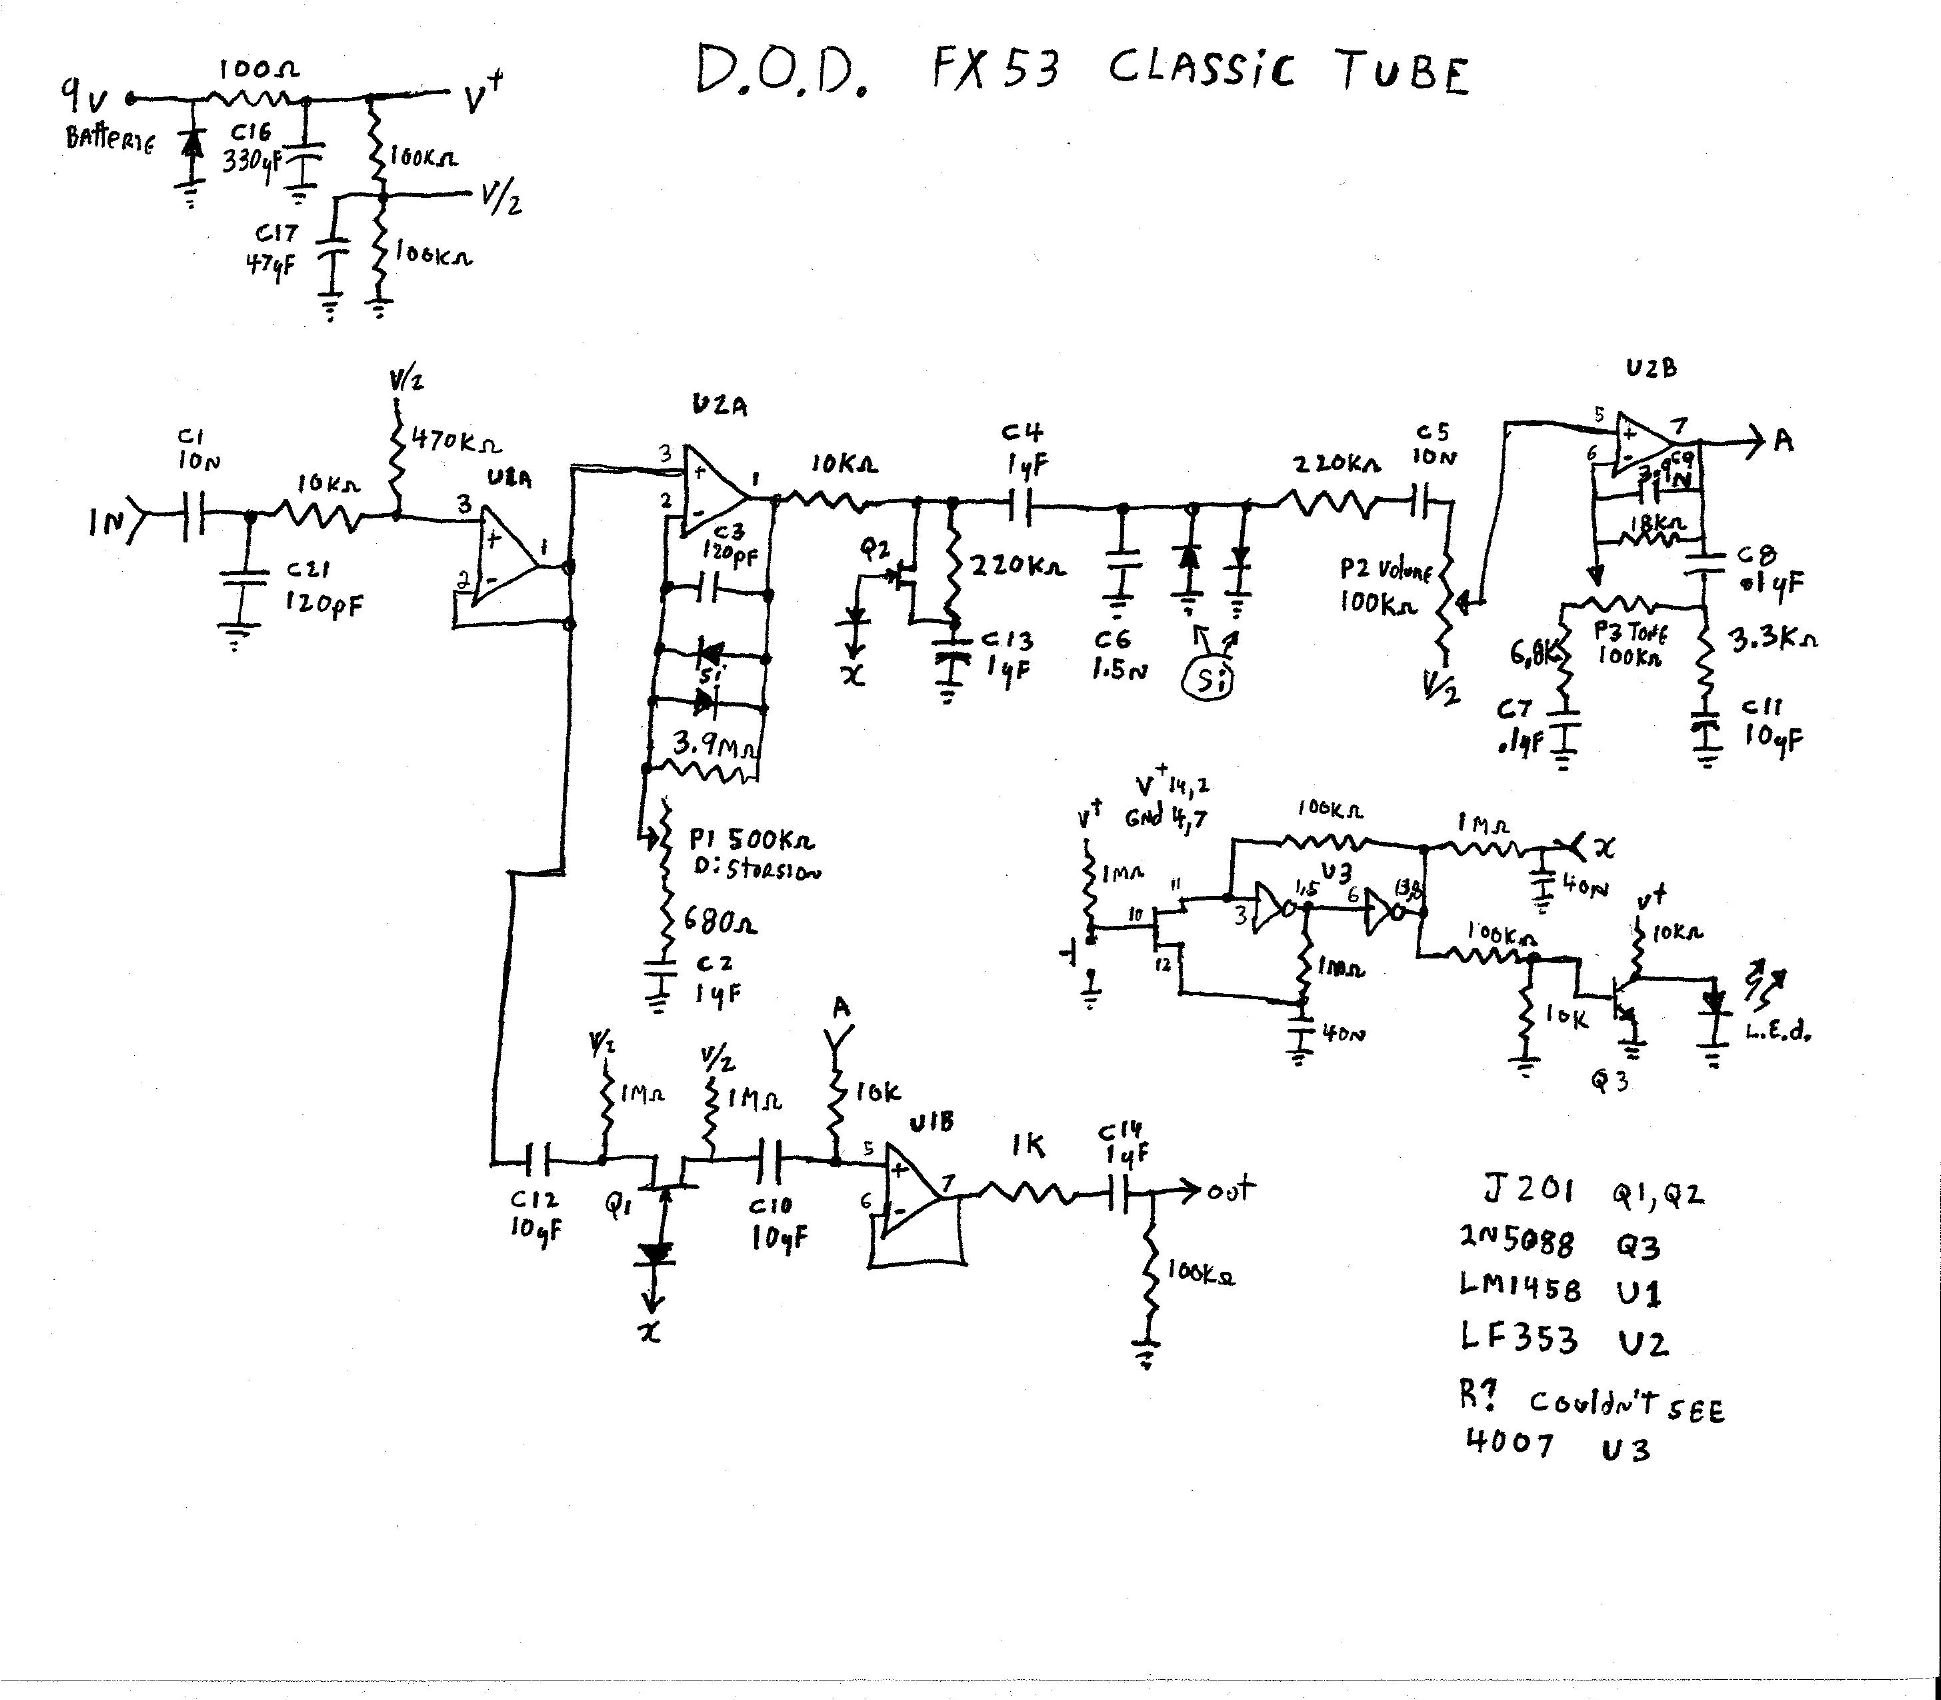 Selected Schematics Ultrasonic Circuit Schematic Free Download Wiring Diagram Related Circuits Fx53 Classic Tube